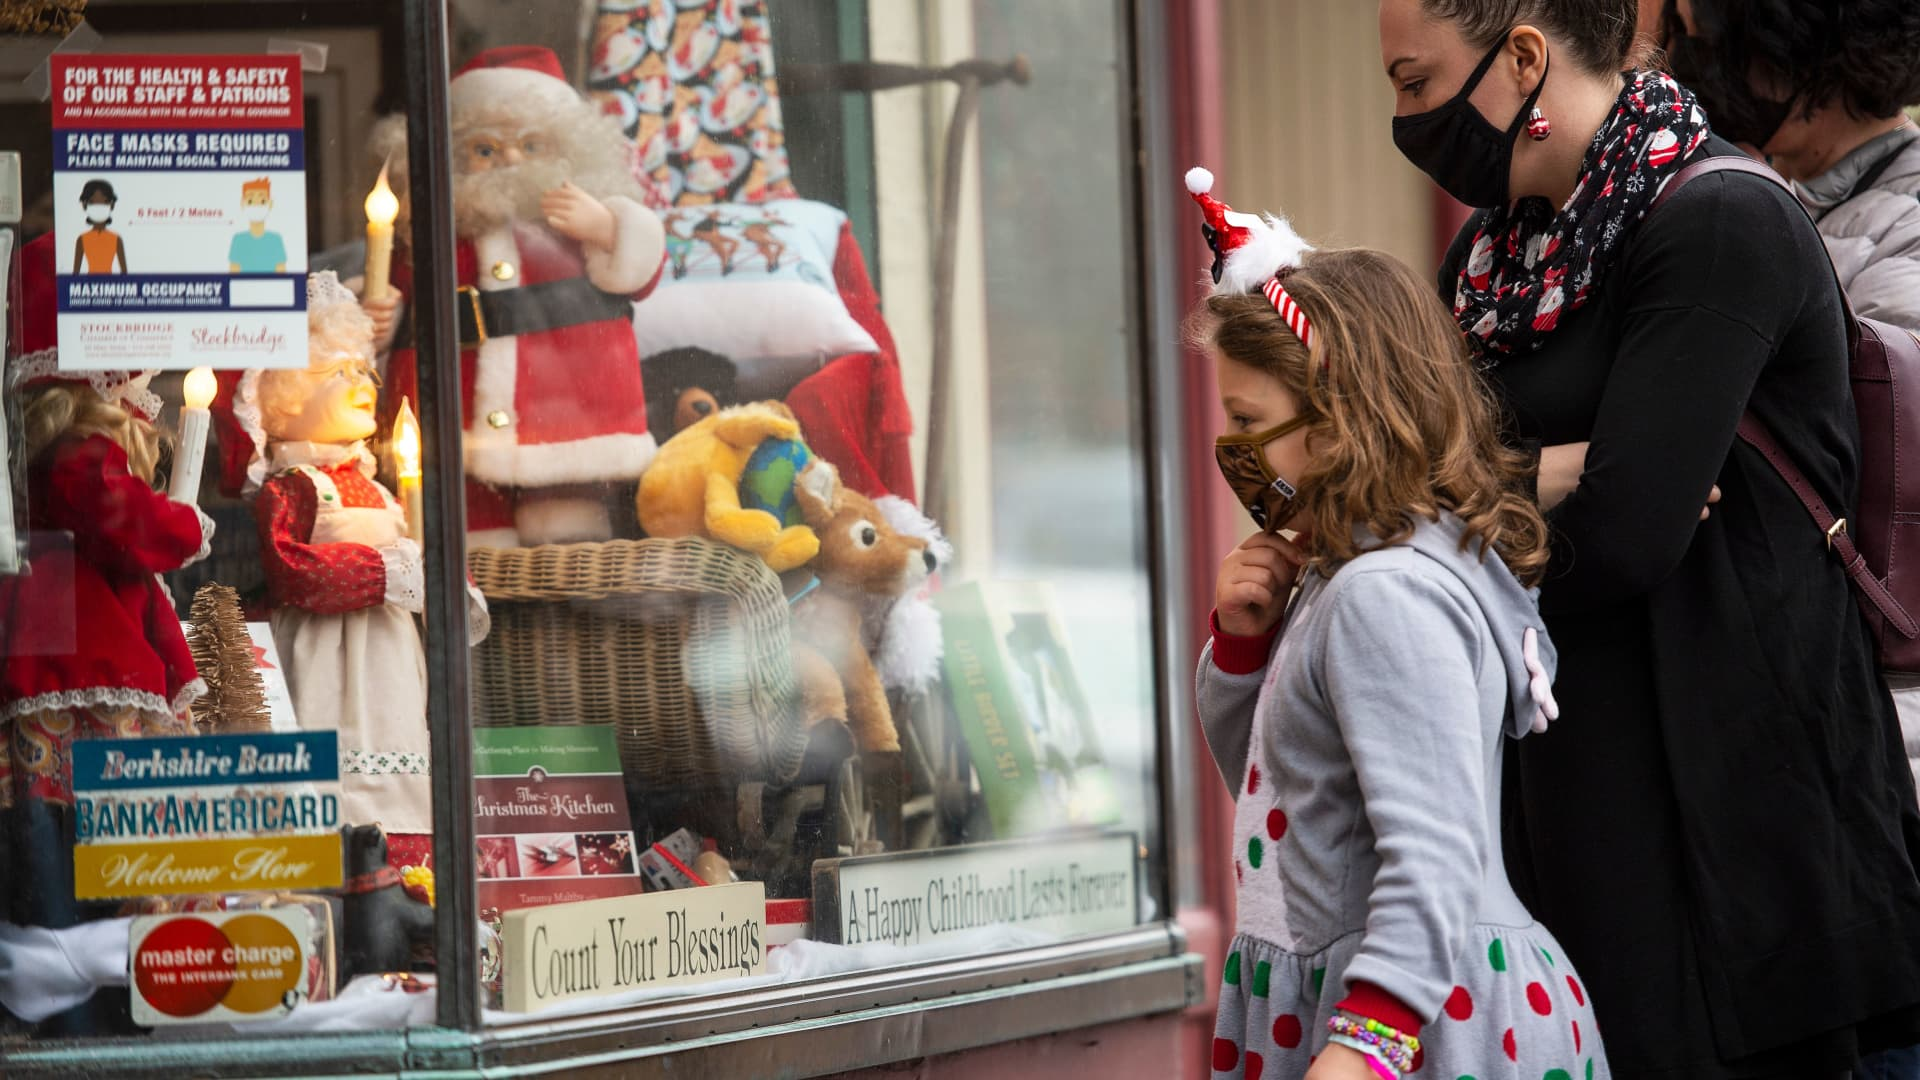 People look at the holiday decorations in the window displays at the Country store on Main Street in Stockbridge, Massachusetts on December 13, 2020.